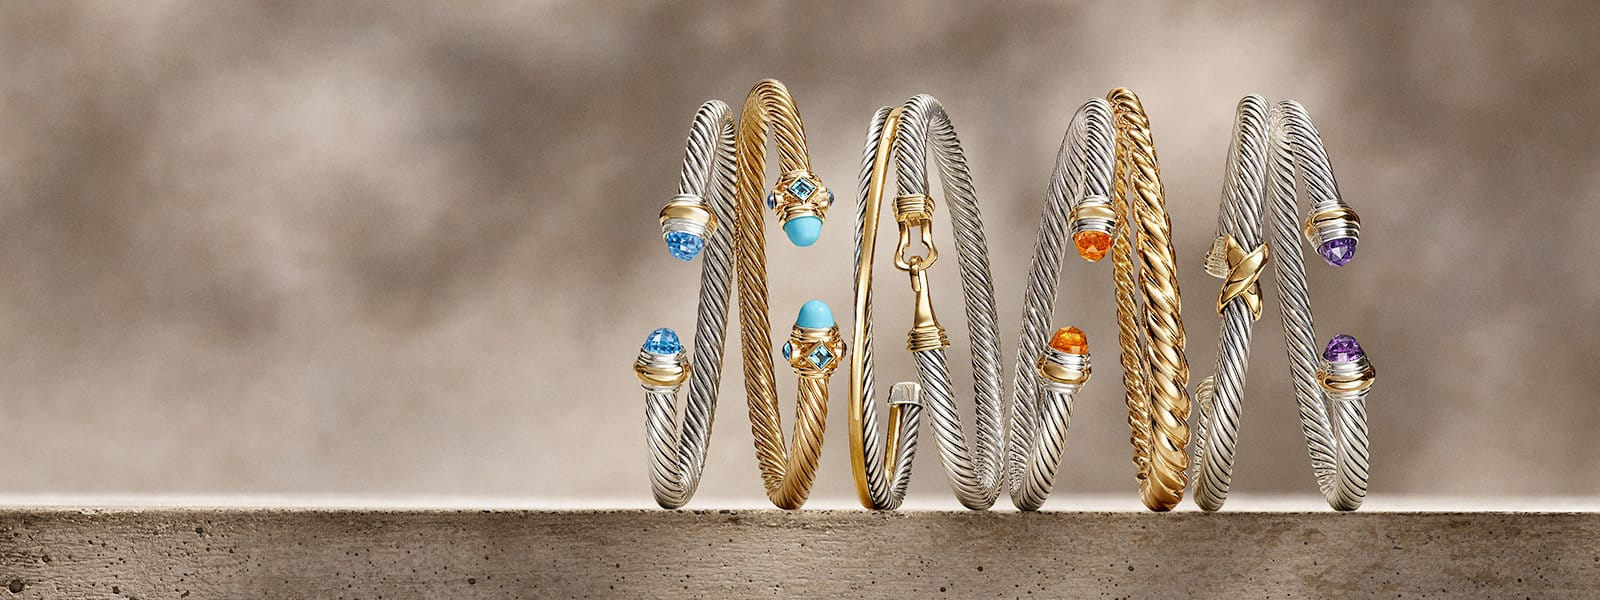 A horizontal stack of David Yurman The Cable Collection®, X Collection , Pure Form and Cable Loop bracelets in 18K yellow gold or sterling silver with or without diamonds, 14K yellow gold or colored gemstones on a beige textured stone with long shadows.